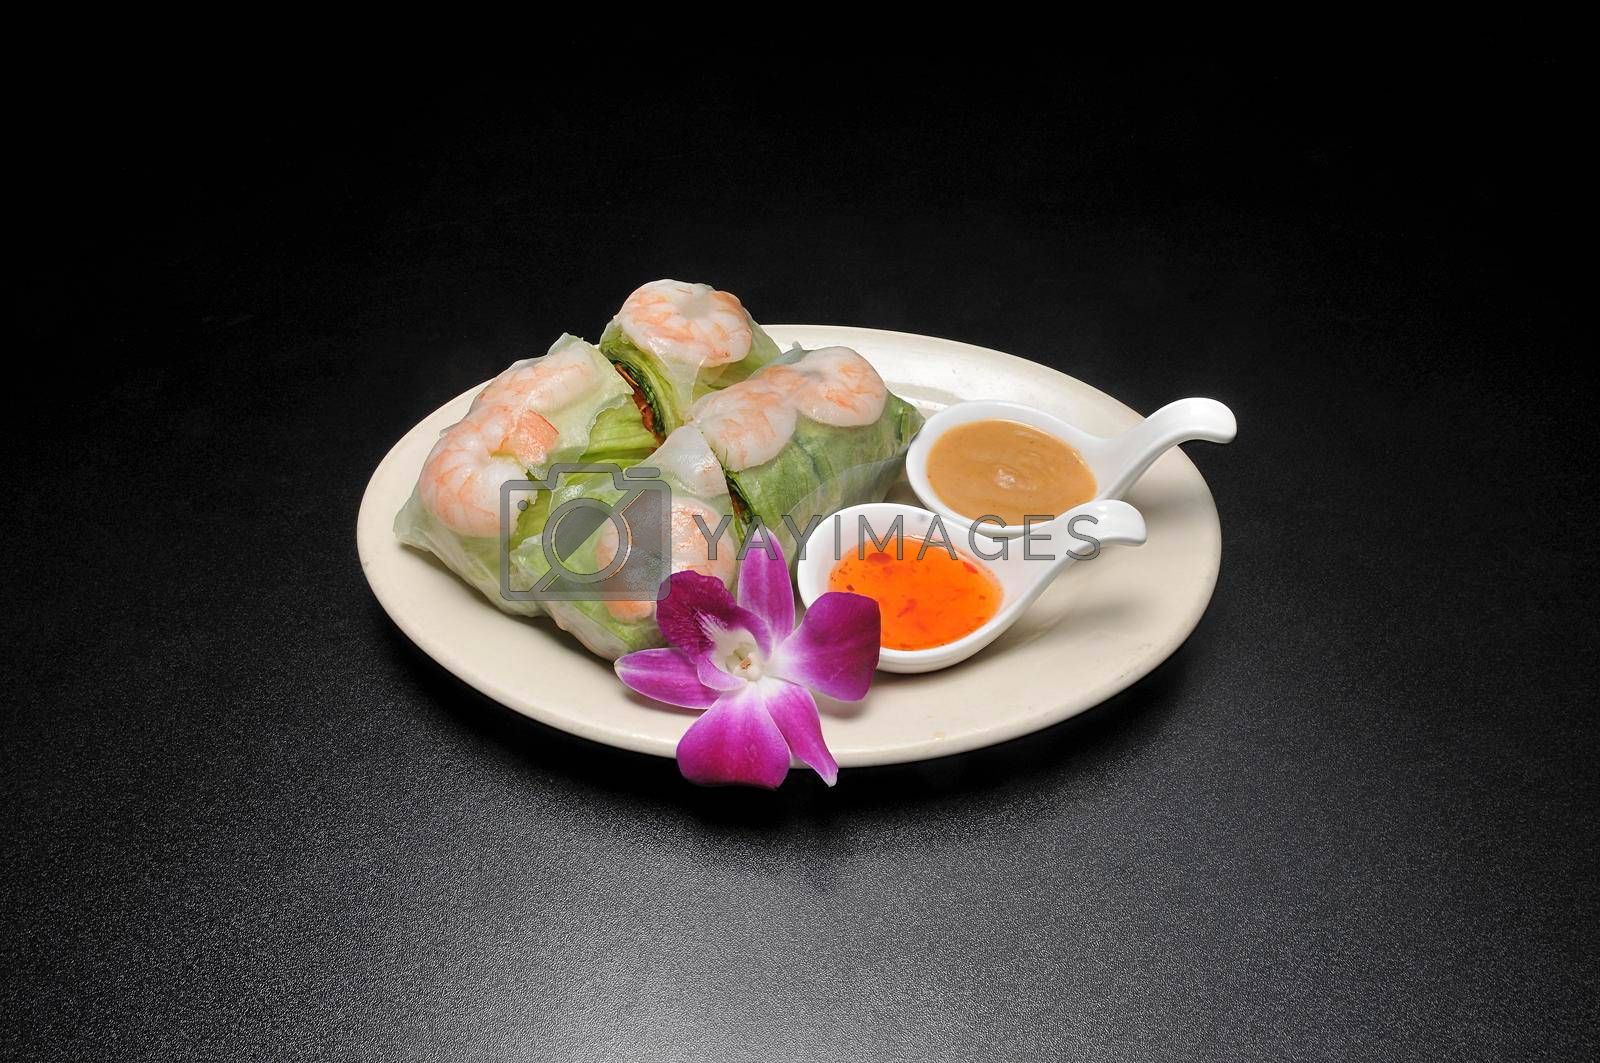 Delicious Asian cuisine known as summer roll